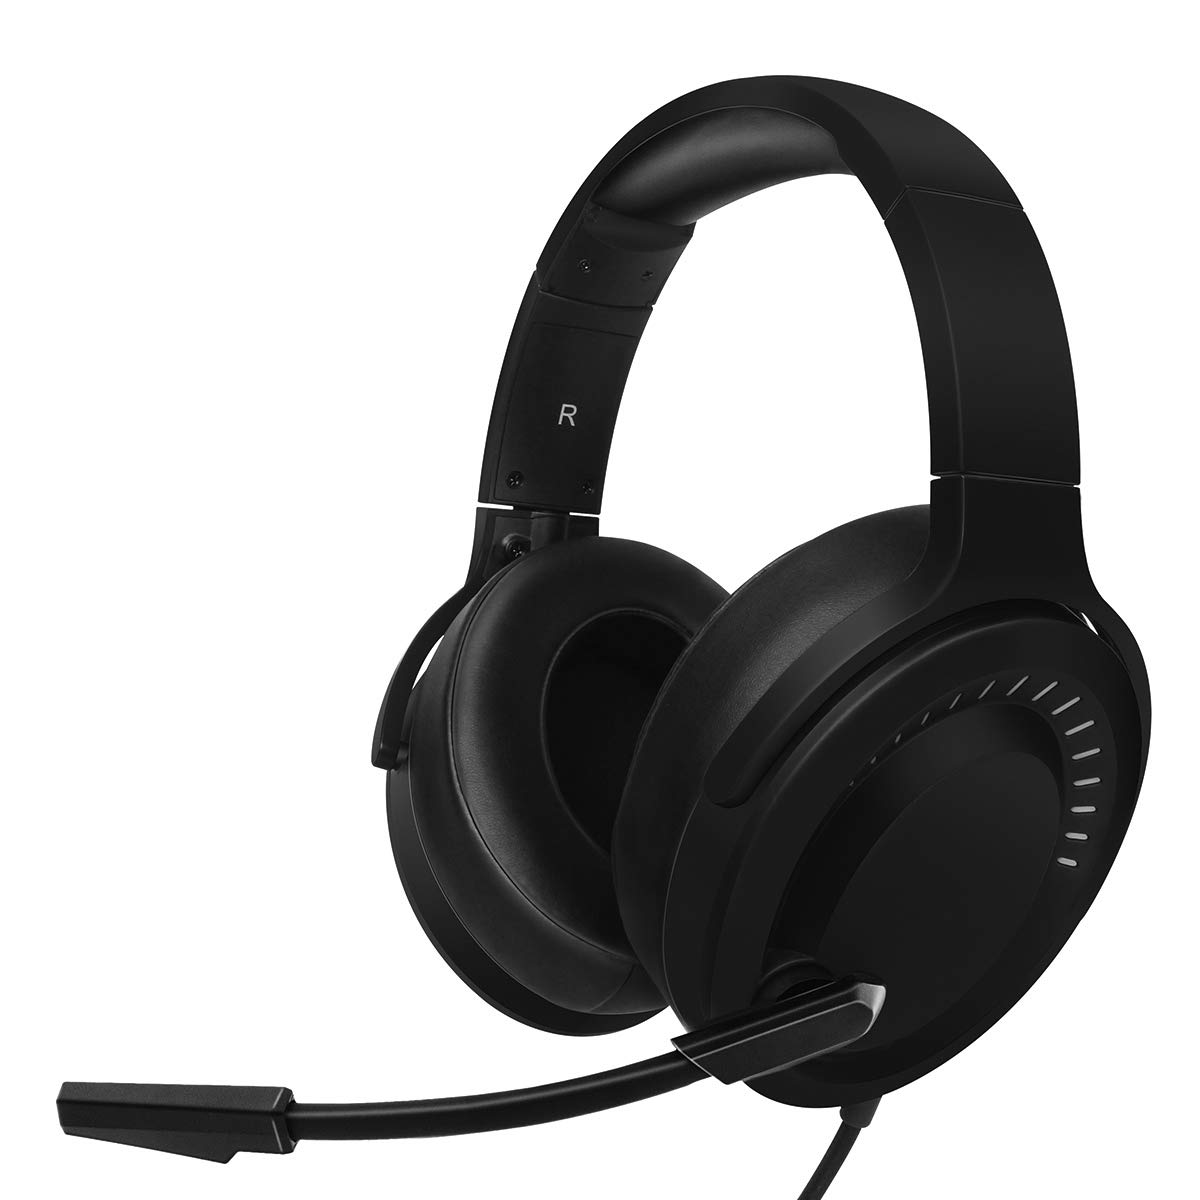 NUBWO N15 Surround Sound Stereo Gaming Headset with Noise Cancelling Mic for PlayStation 4, PS4, Xbox One Controller, Nintendo Switch Lite, PC, Laptop, Android & IOS Phone by NUBWO